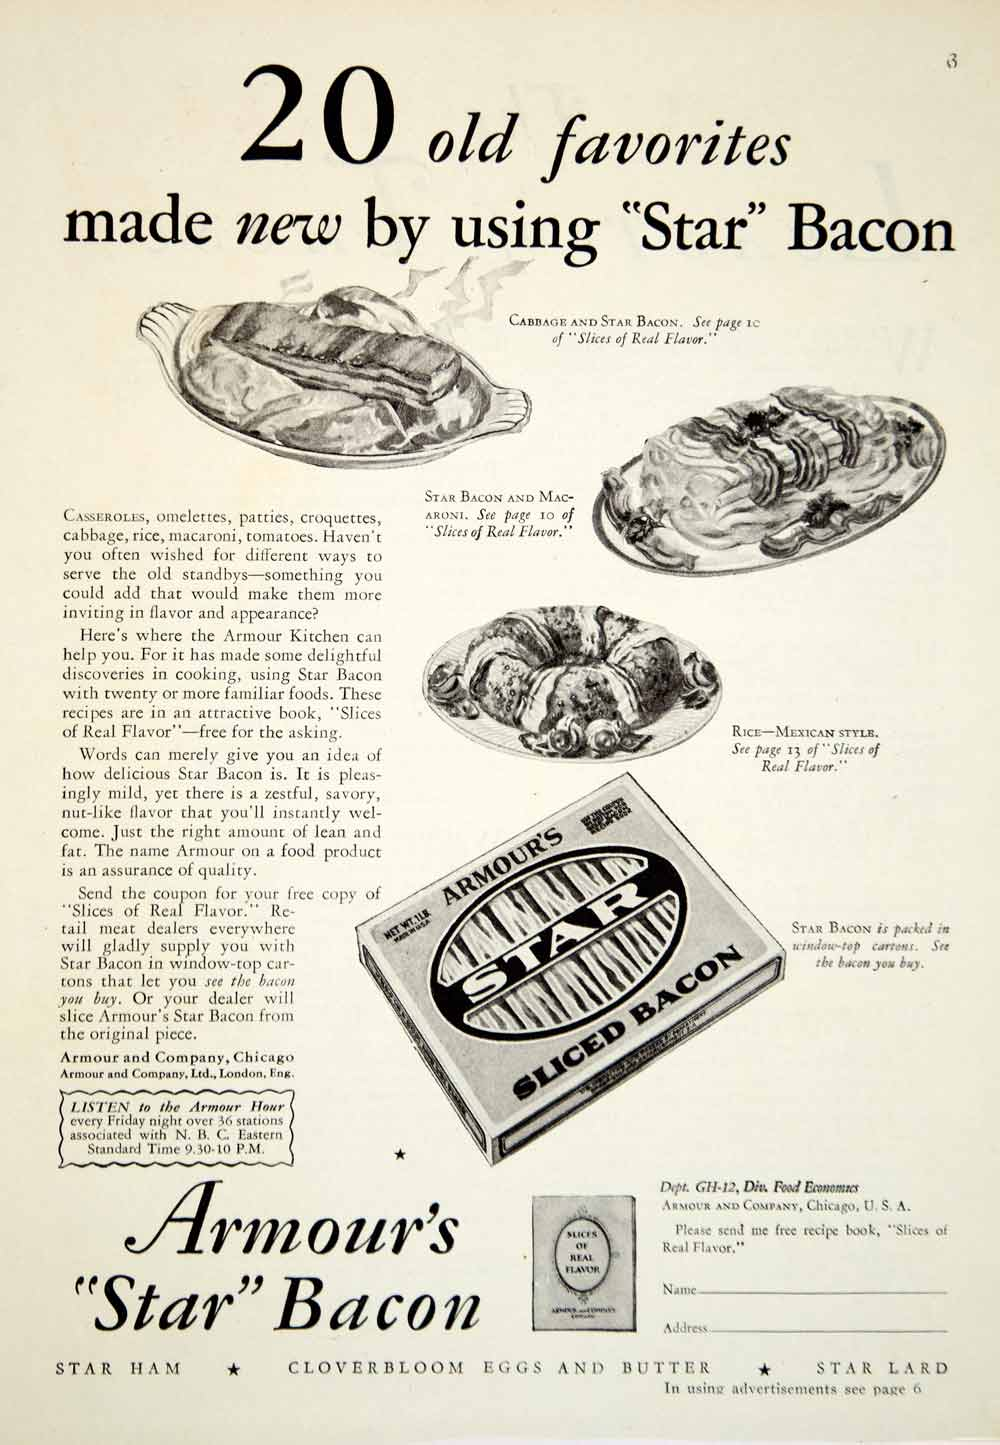 1929 Ad Armour Star Bacon Ham Cloverbloom Eggs Butter Lard Food Meat Dishes YGH3